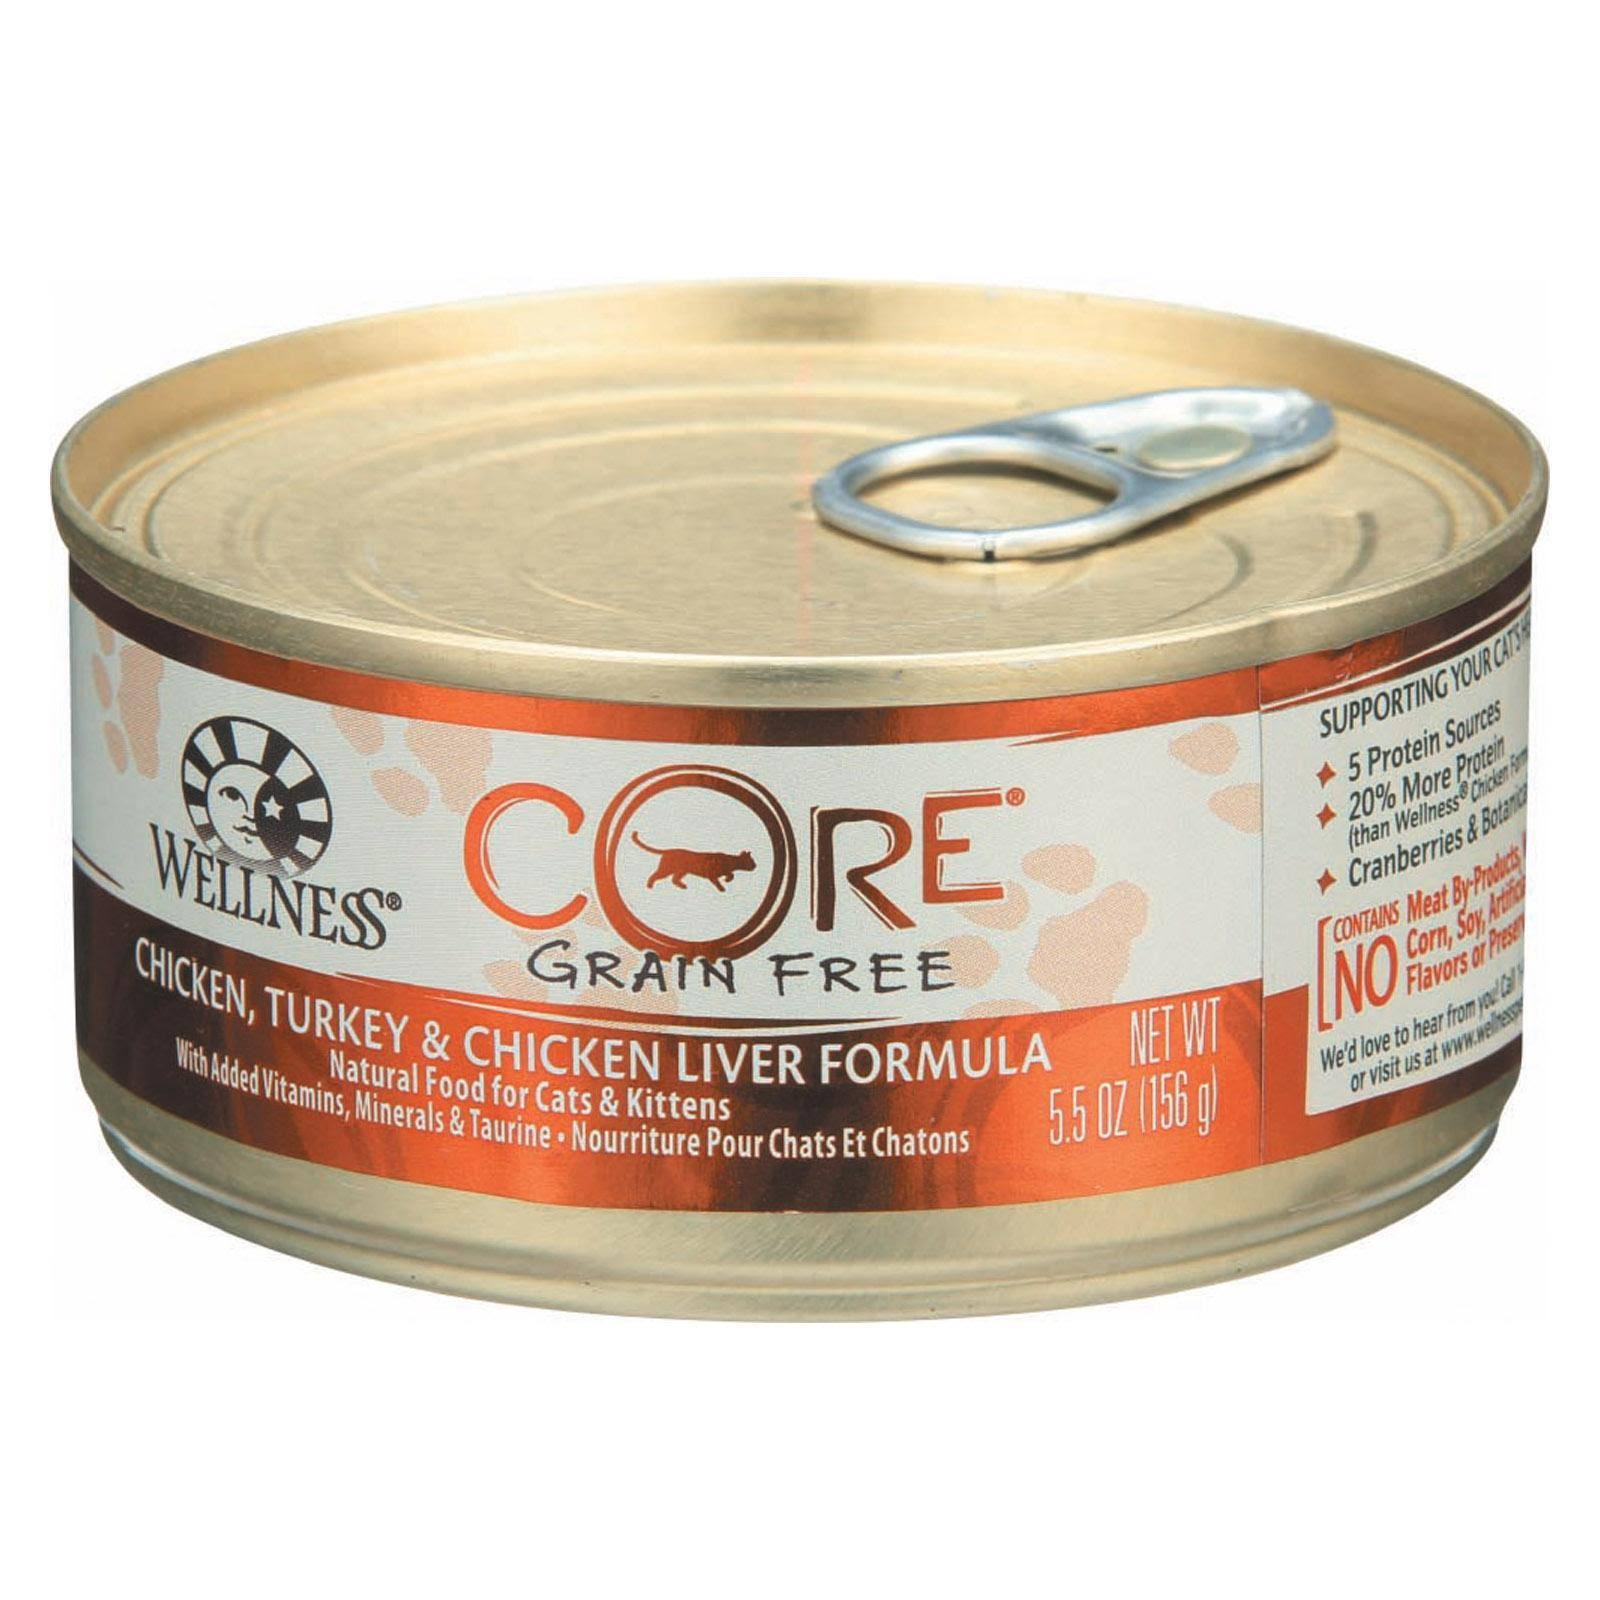 Wellness Core - Chicken, Turkey & Chicken Liver Formula, 5.5oz